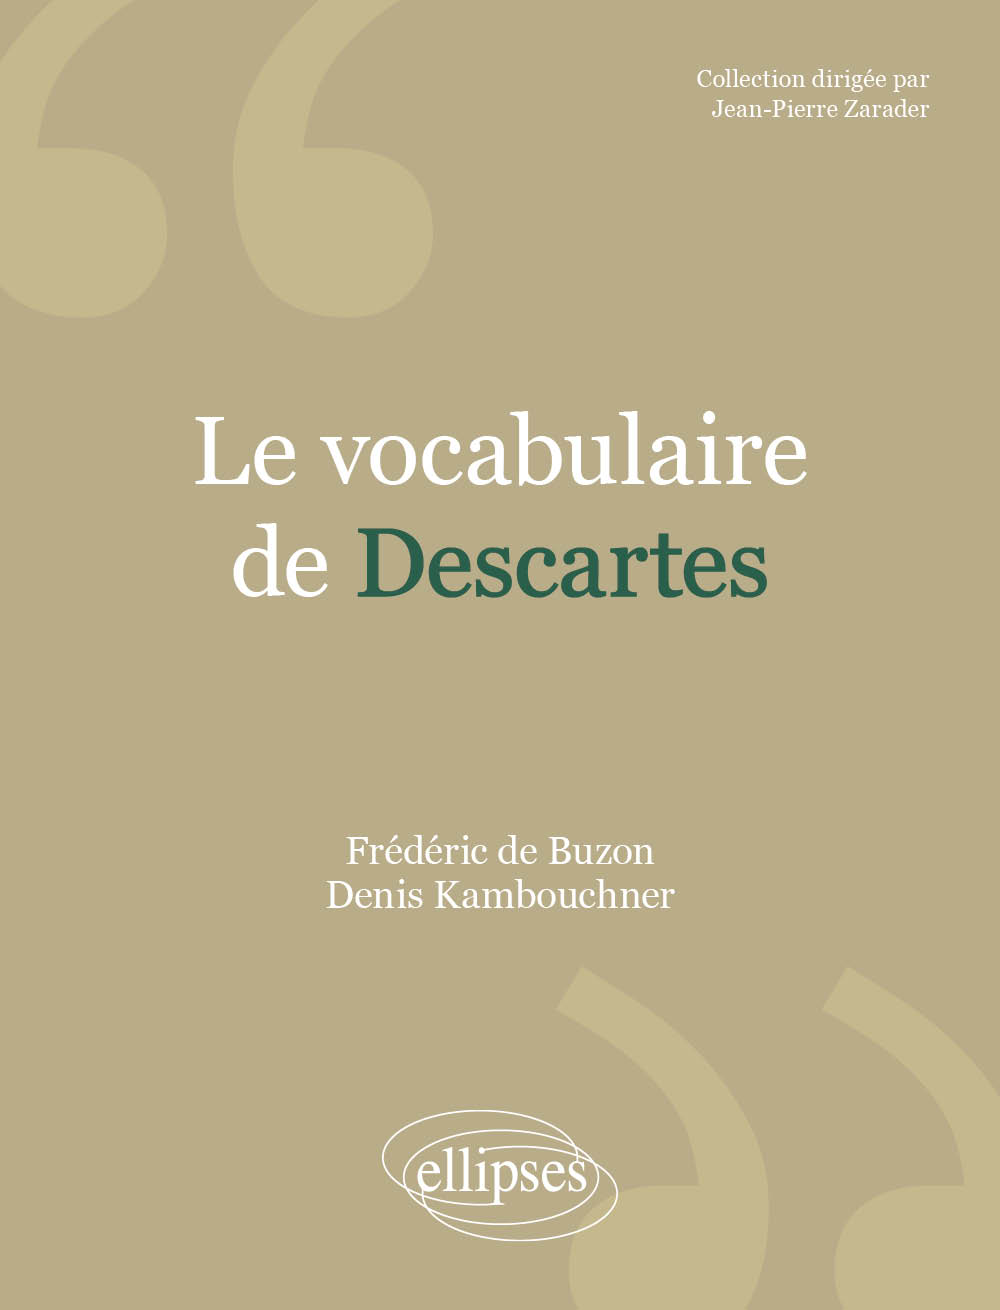 Le vocabulaire de Descartes - Nouvelle édition